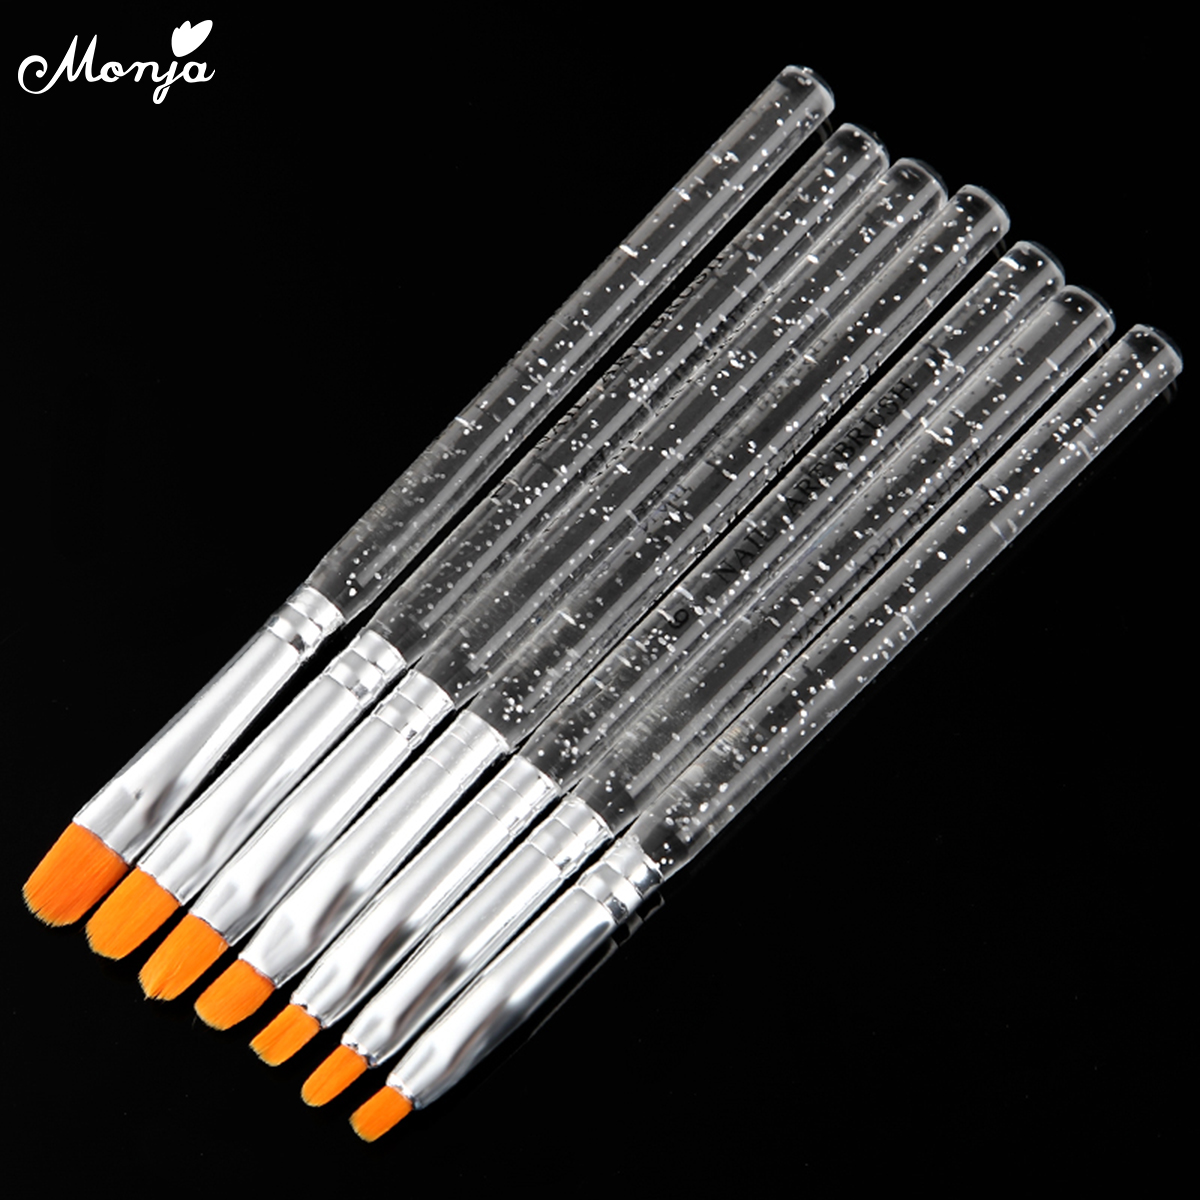 Monja 7pcs/set Nail Art Acrylic UV Gel Polish Extension Builder Painting Brush French  Drawing Pen Manicure Tools